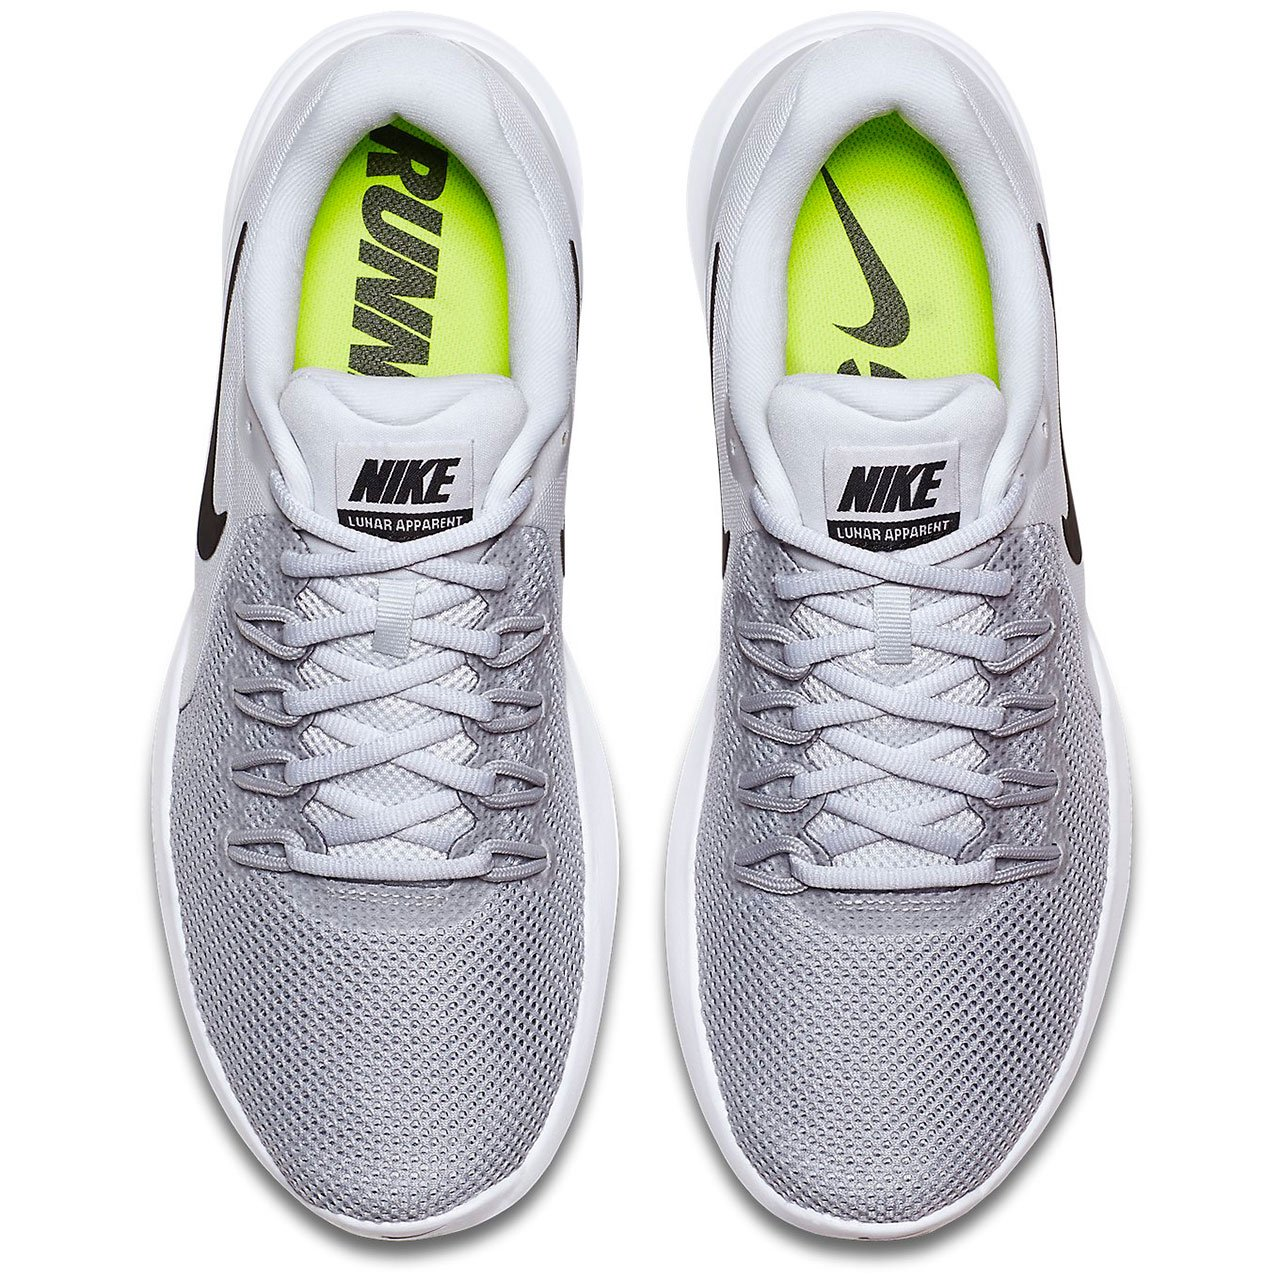 823c94fa5f30 ... NIKE Lunar Apparent Mens Mens Mens Running Shoes B01N3SHVCZ 11.5 D(M)  US